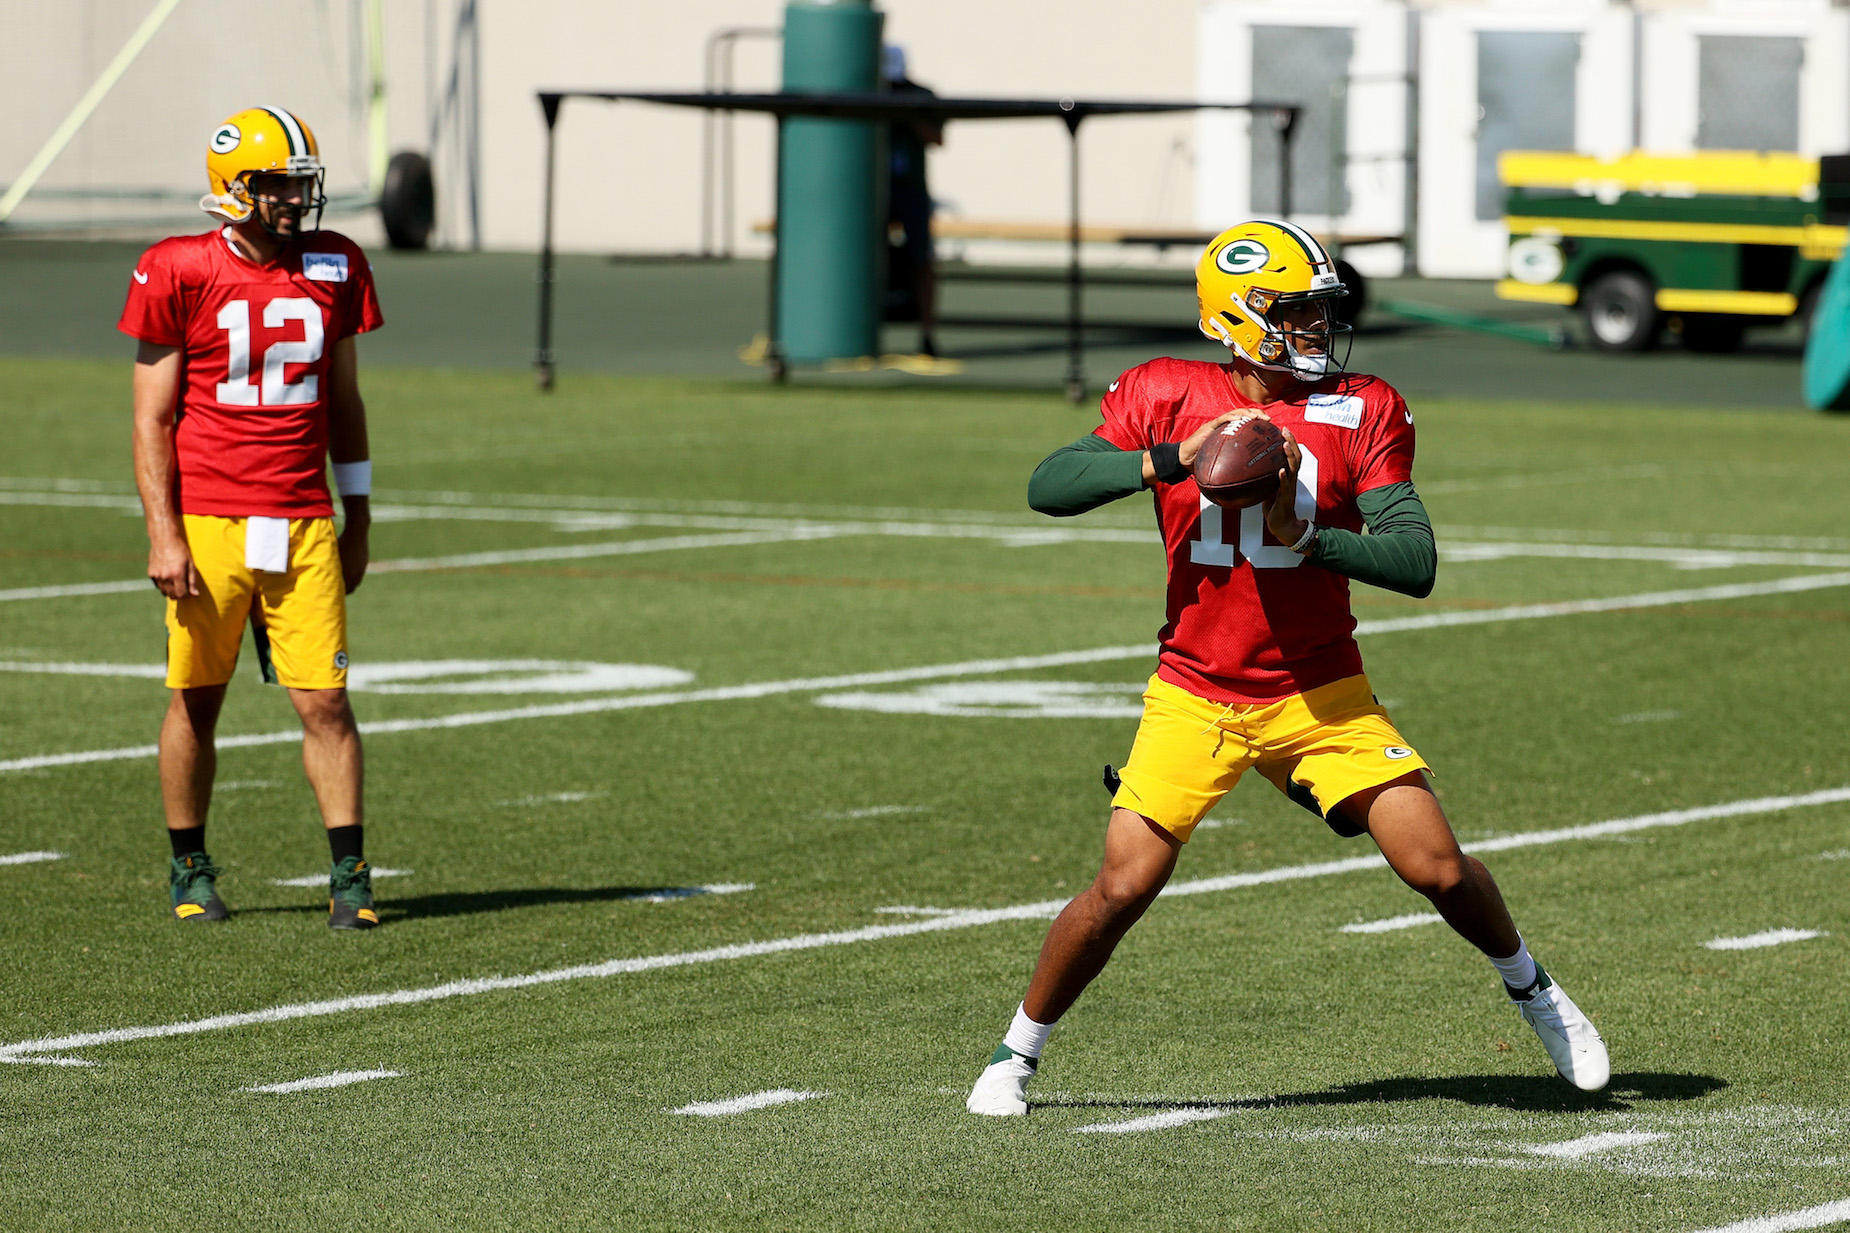 Forgot replacing Aaron Rodgers, Jordan Love might not even be the Green Bay Packers backup quarterback this season.